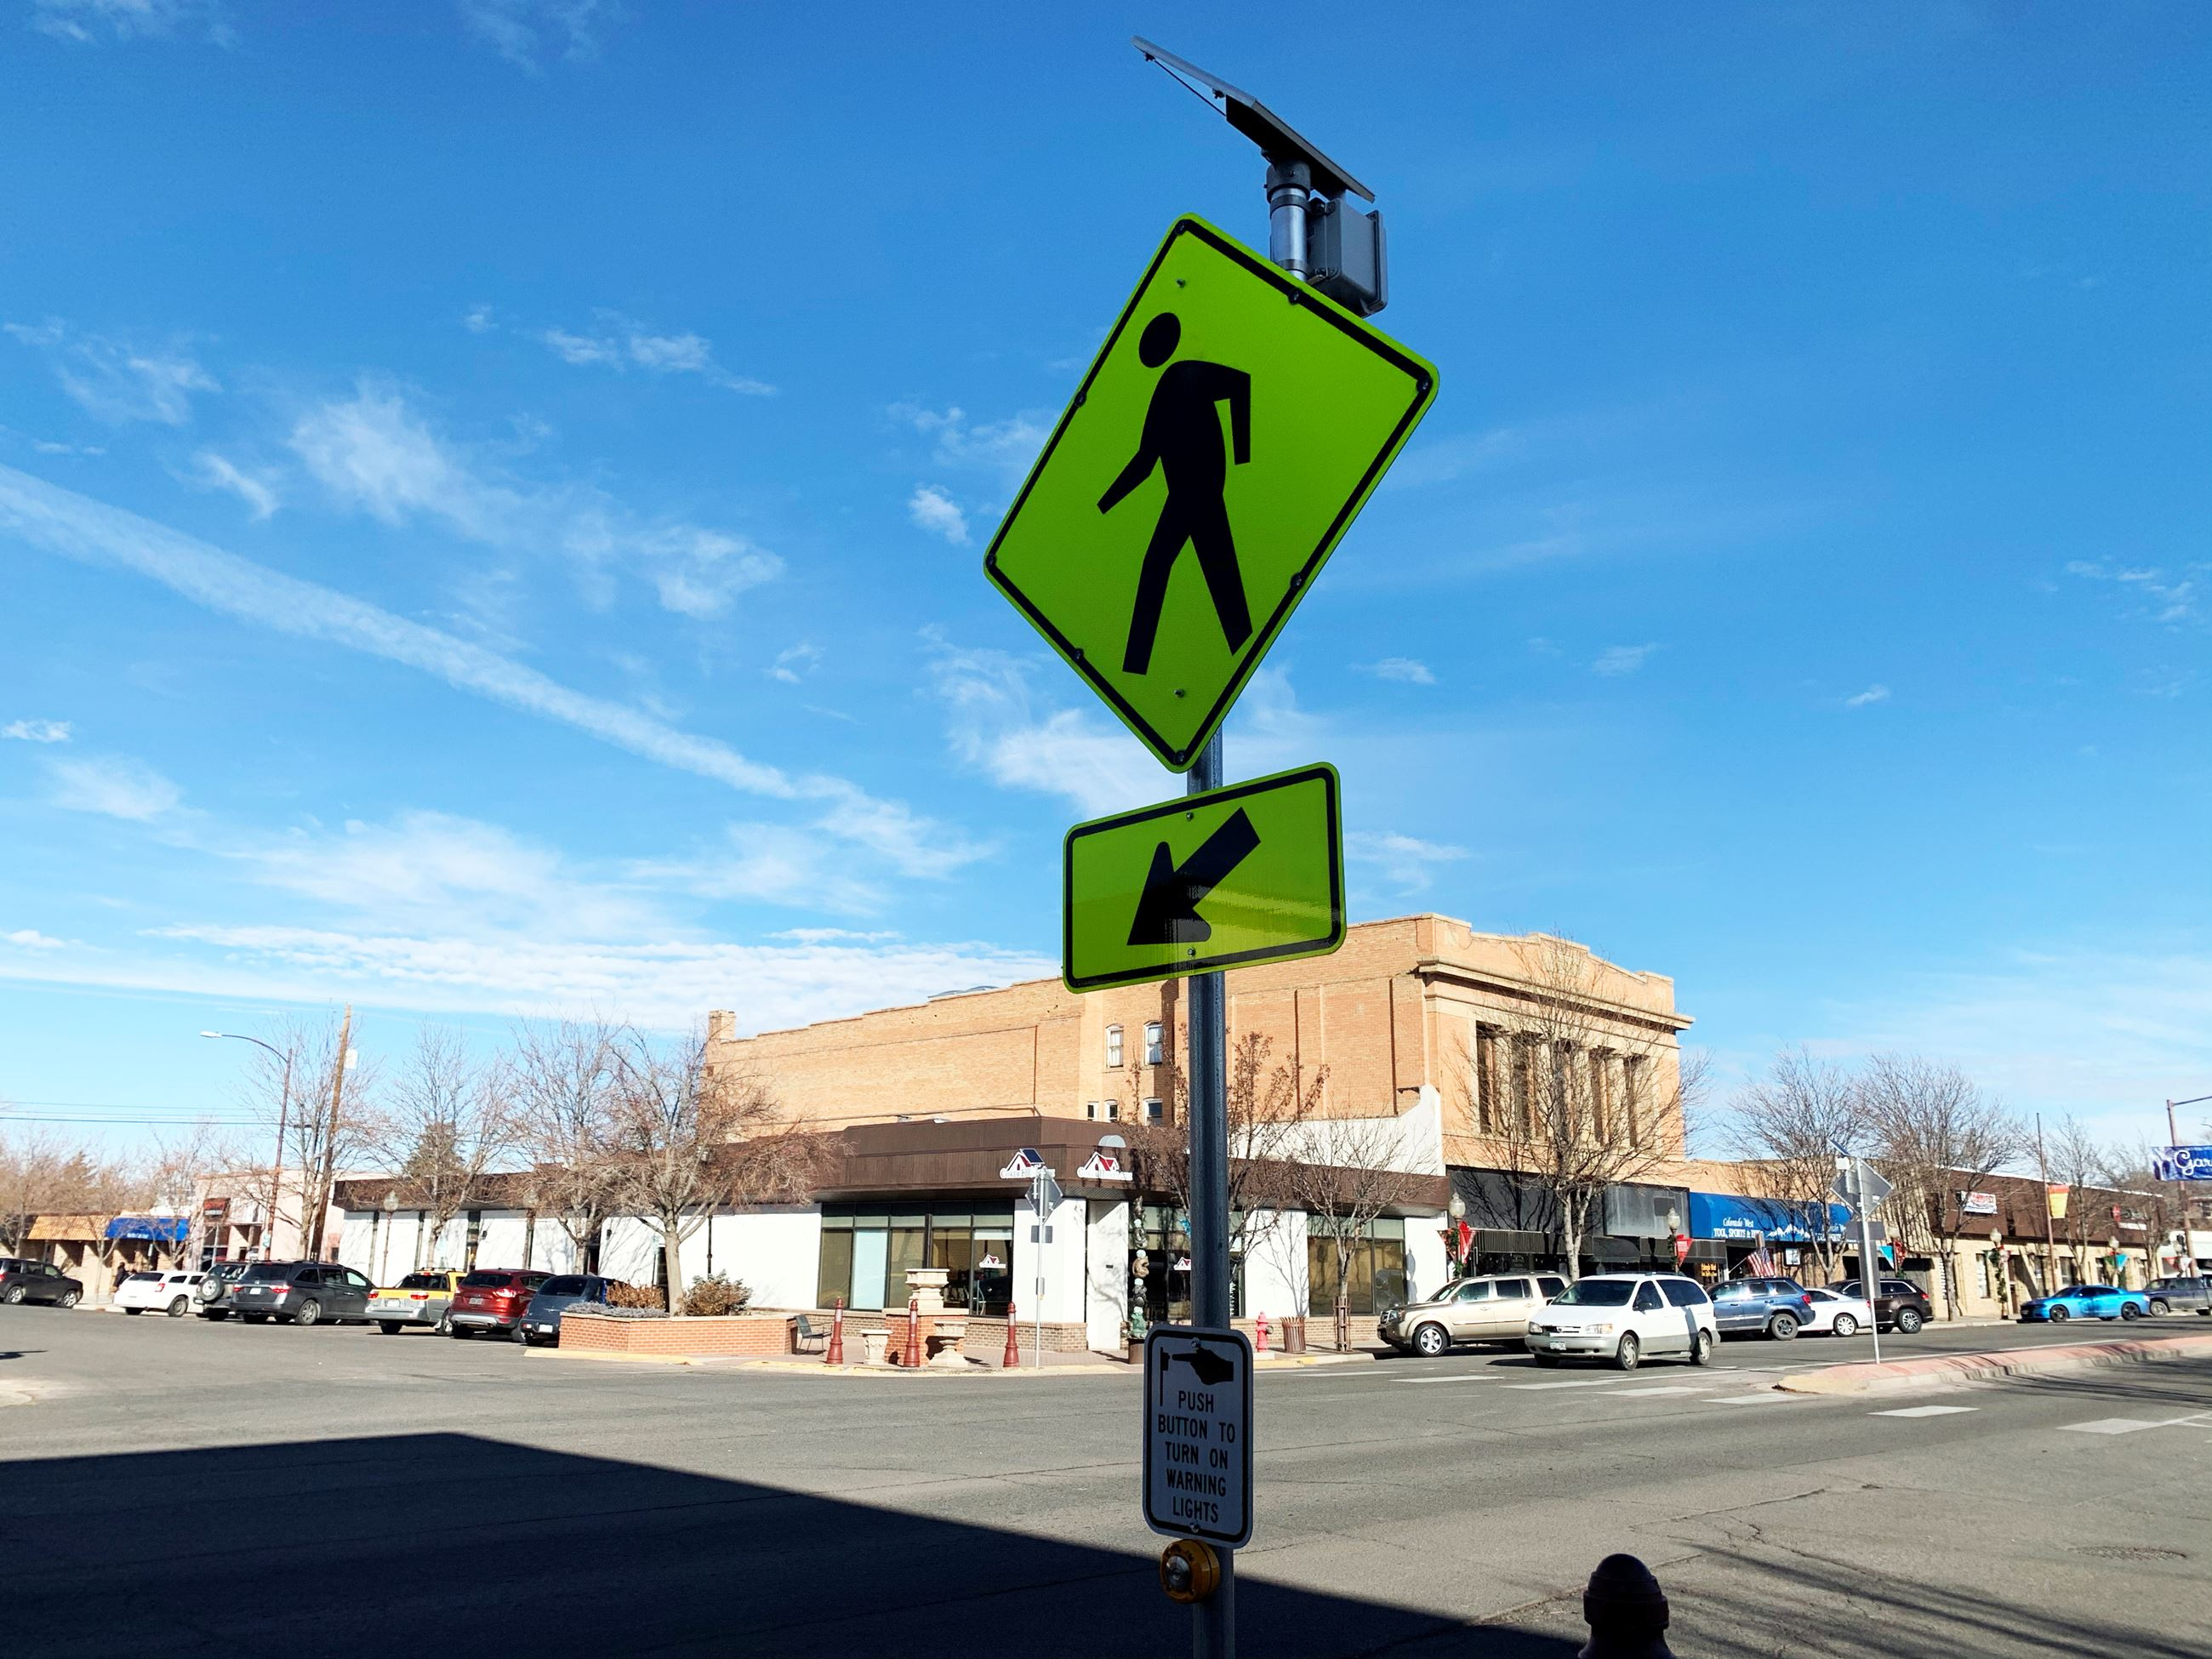 010720MainUncCrosswalk_001